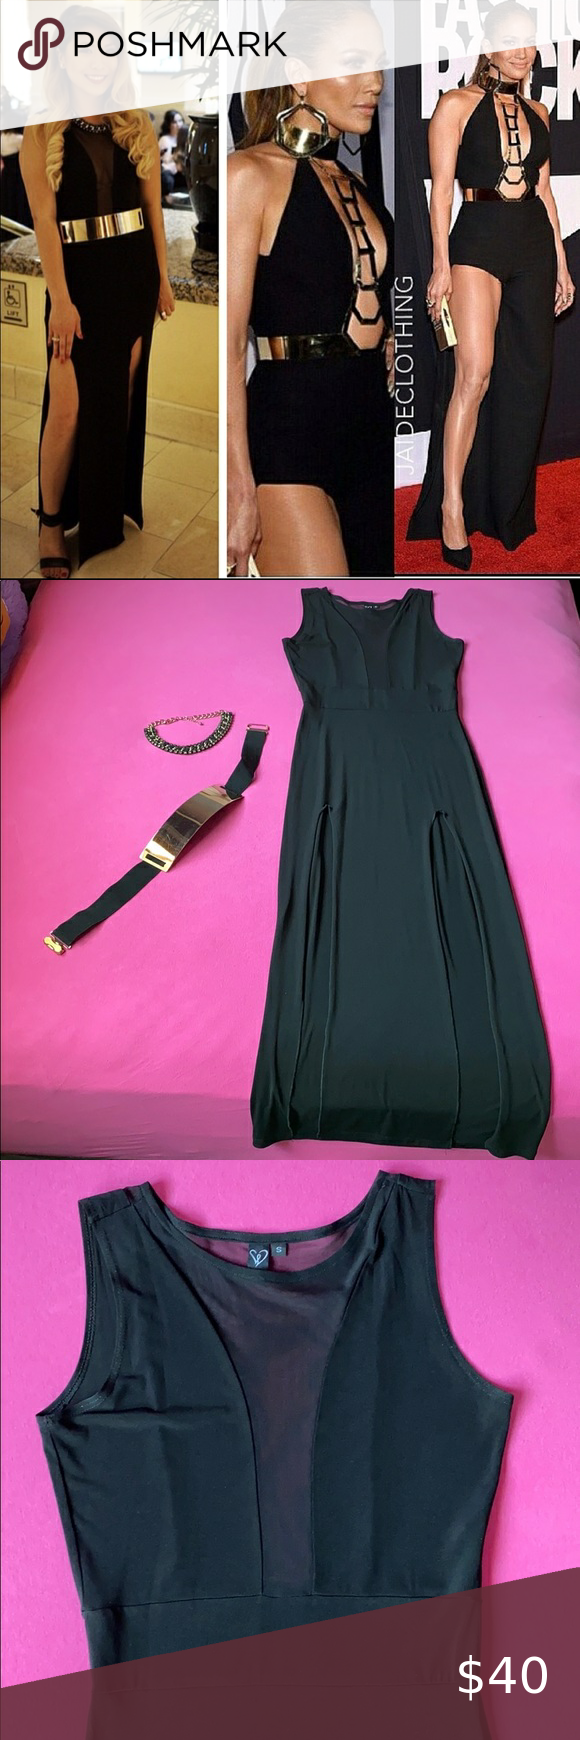 Black Tie Affair Dress, Belt and Necklace in 2020